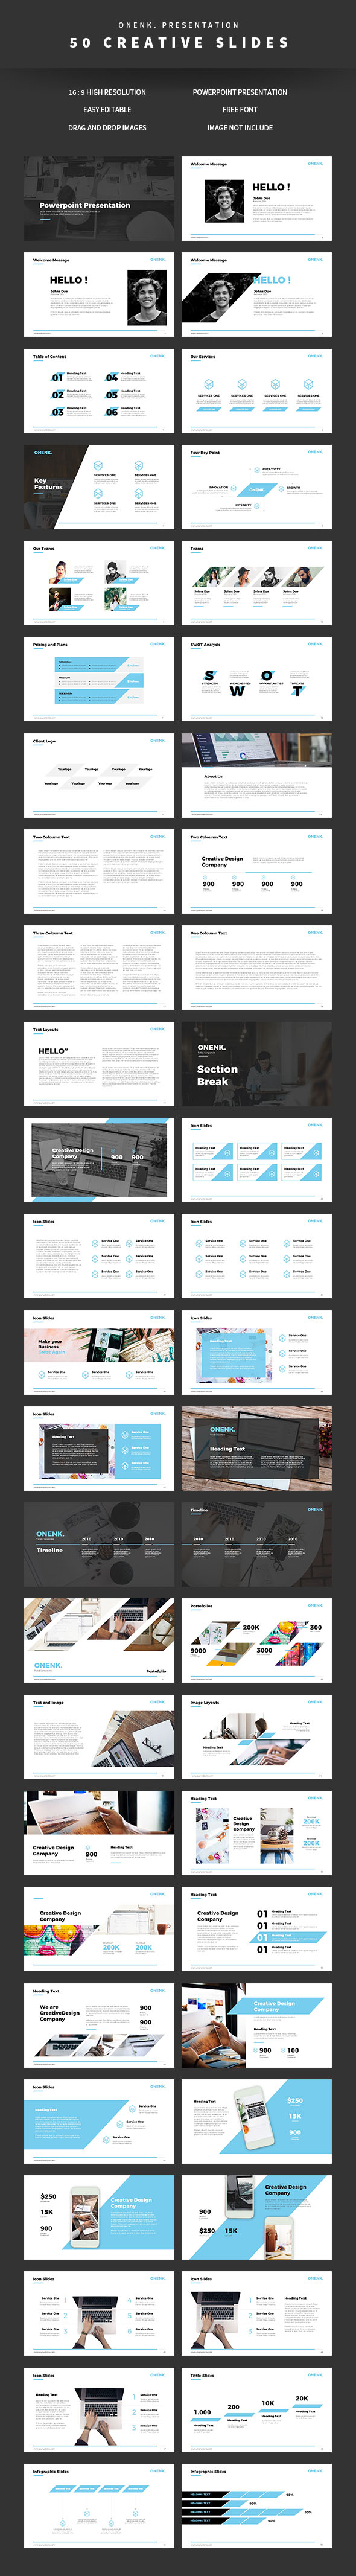 Onenk Powerpoint Templates - Business PowerPoint Templates